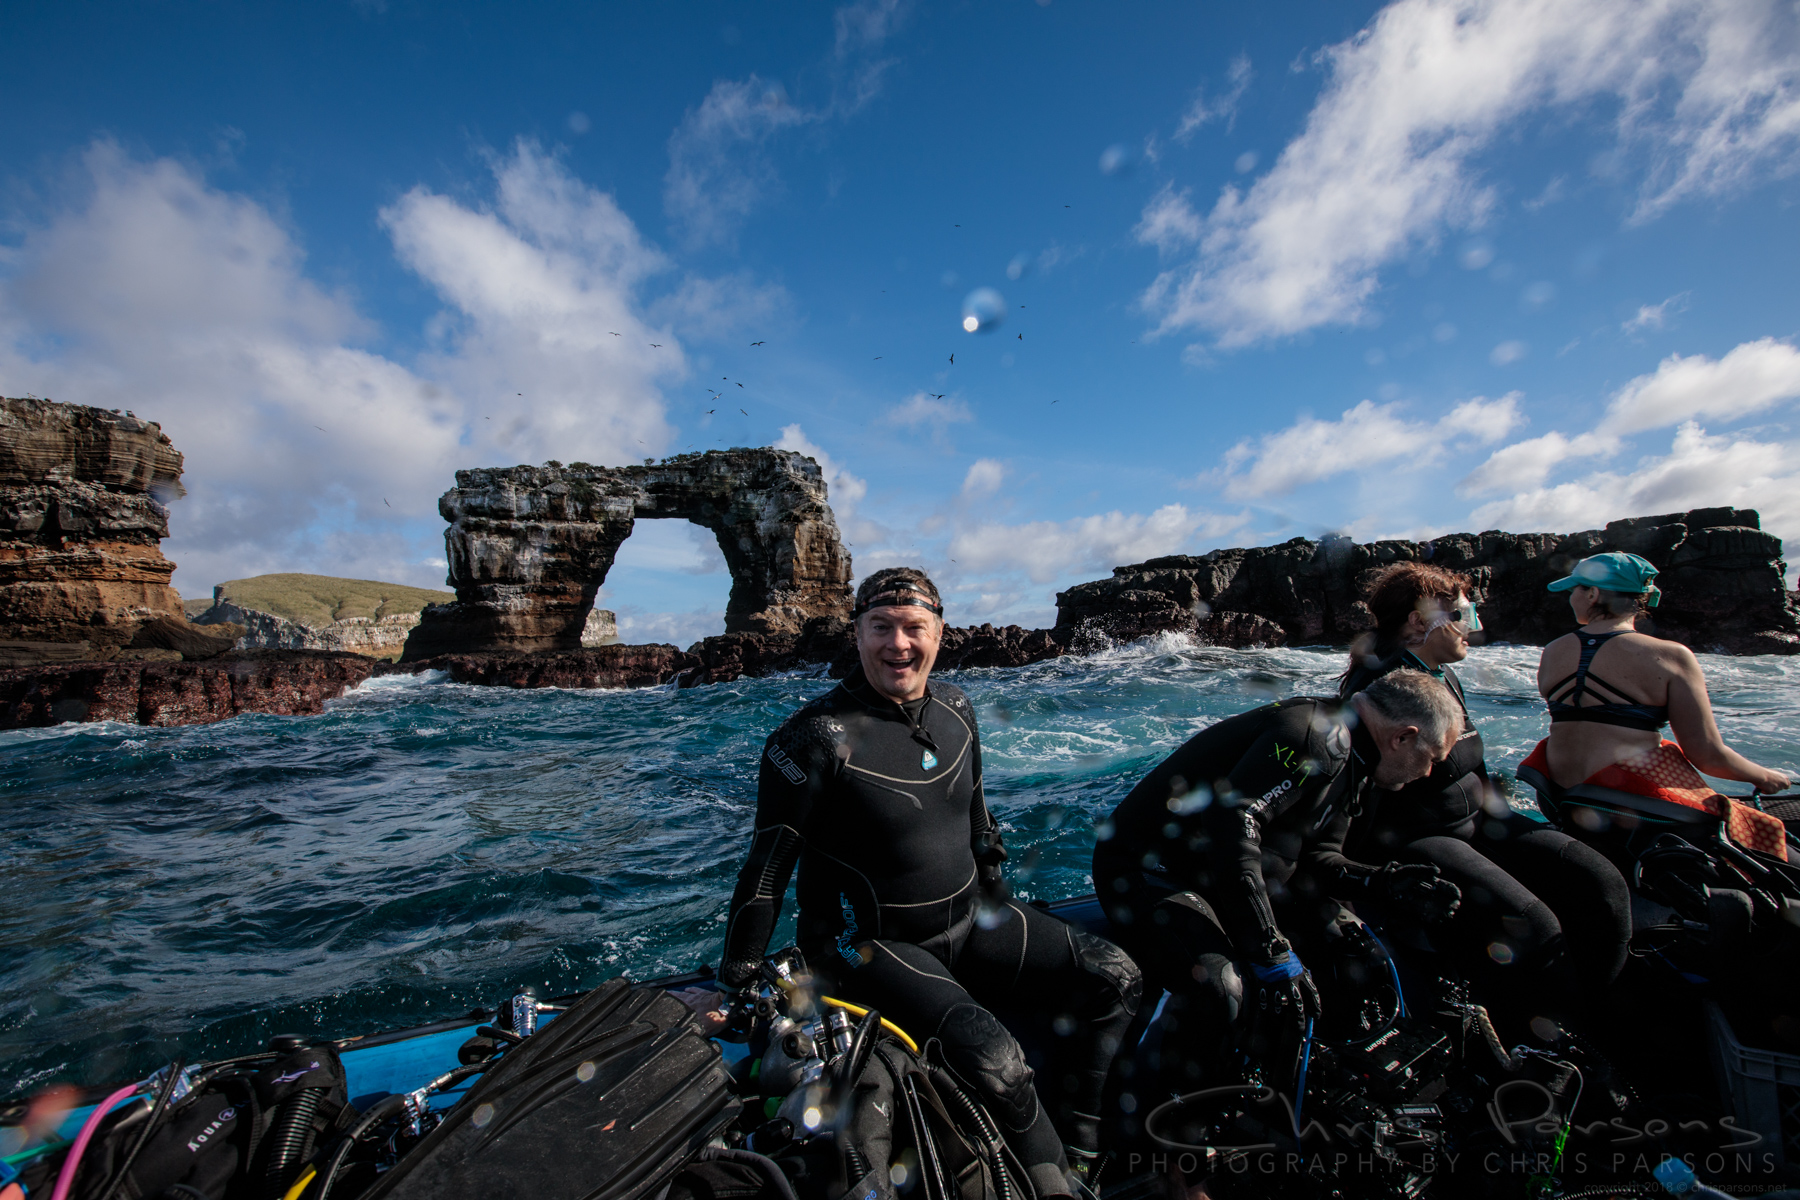 Finishing up a dive at the incredible Darwin's Arch. This may be the single best dive site in the world, and the topside scenery is just incredible.